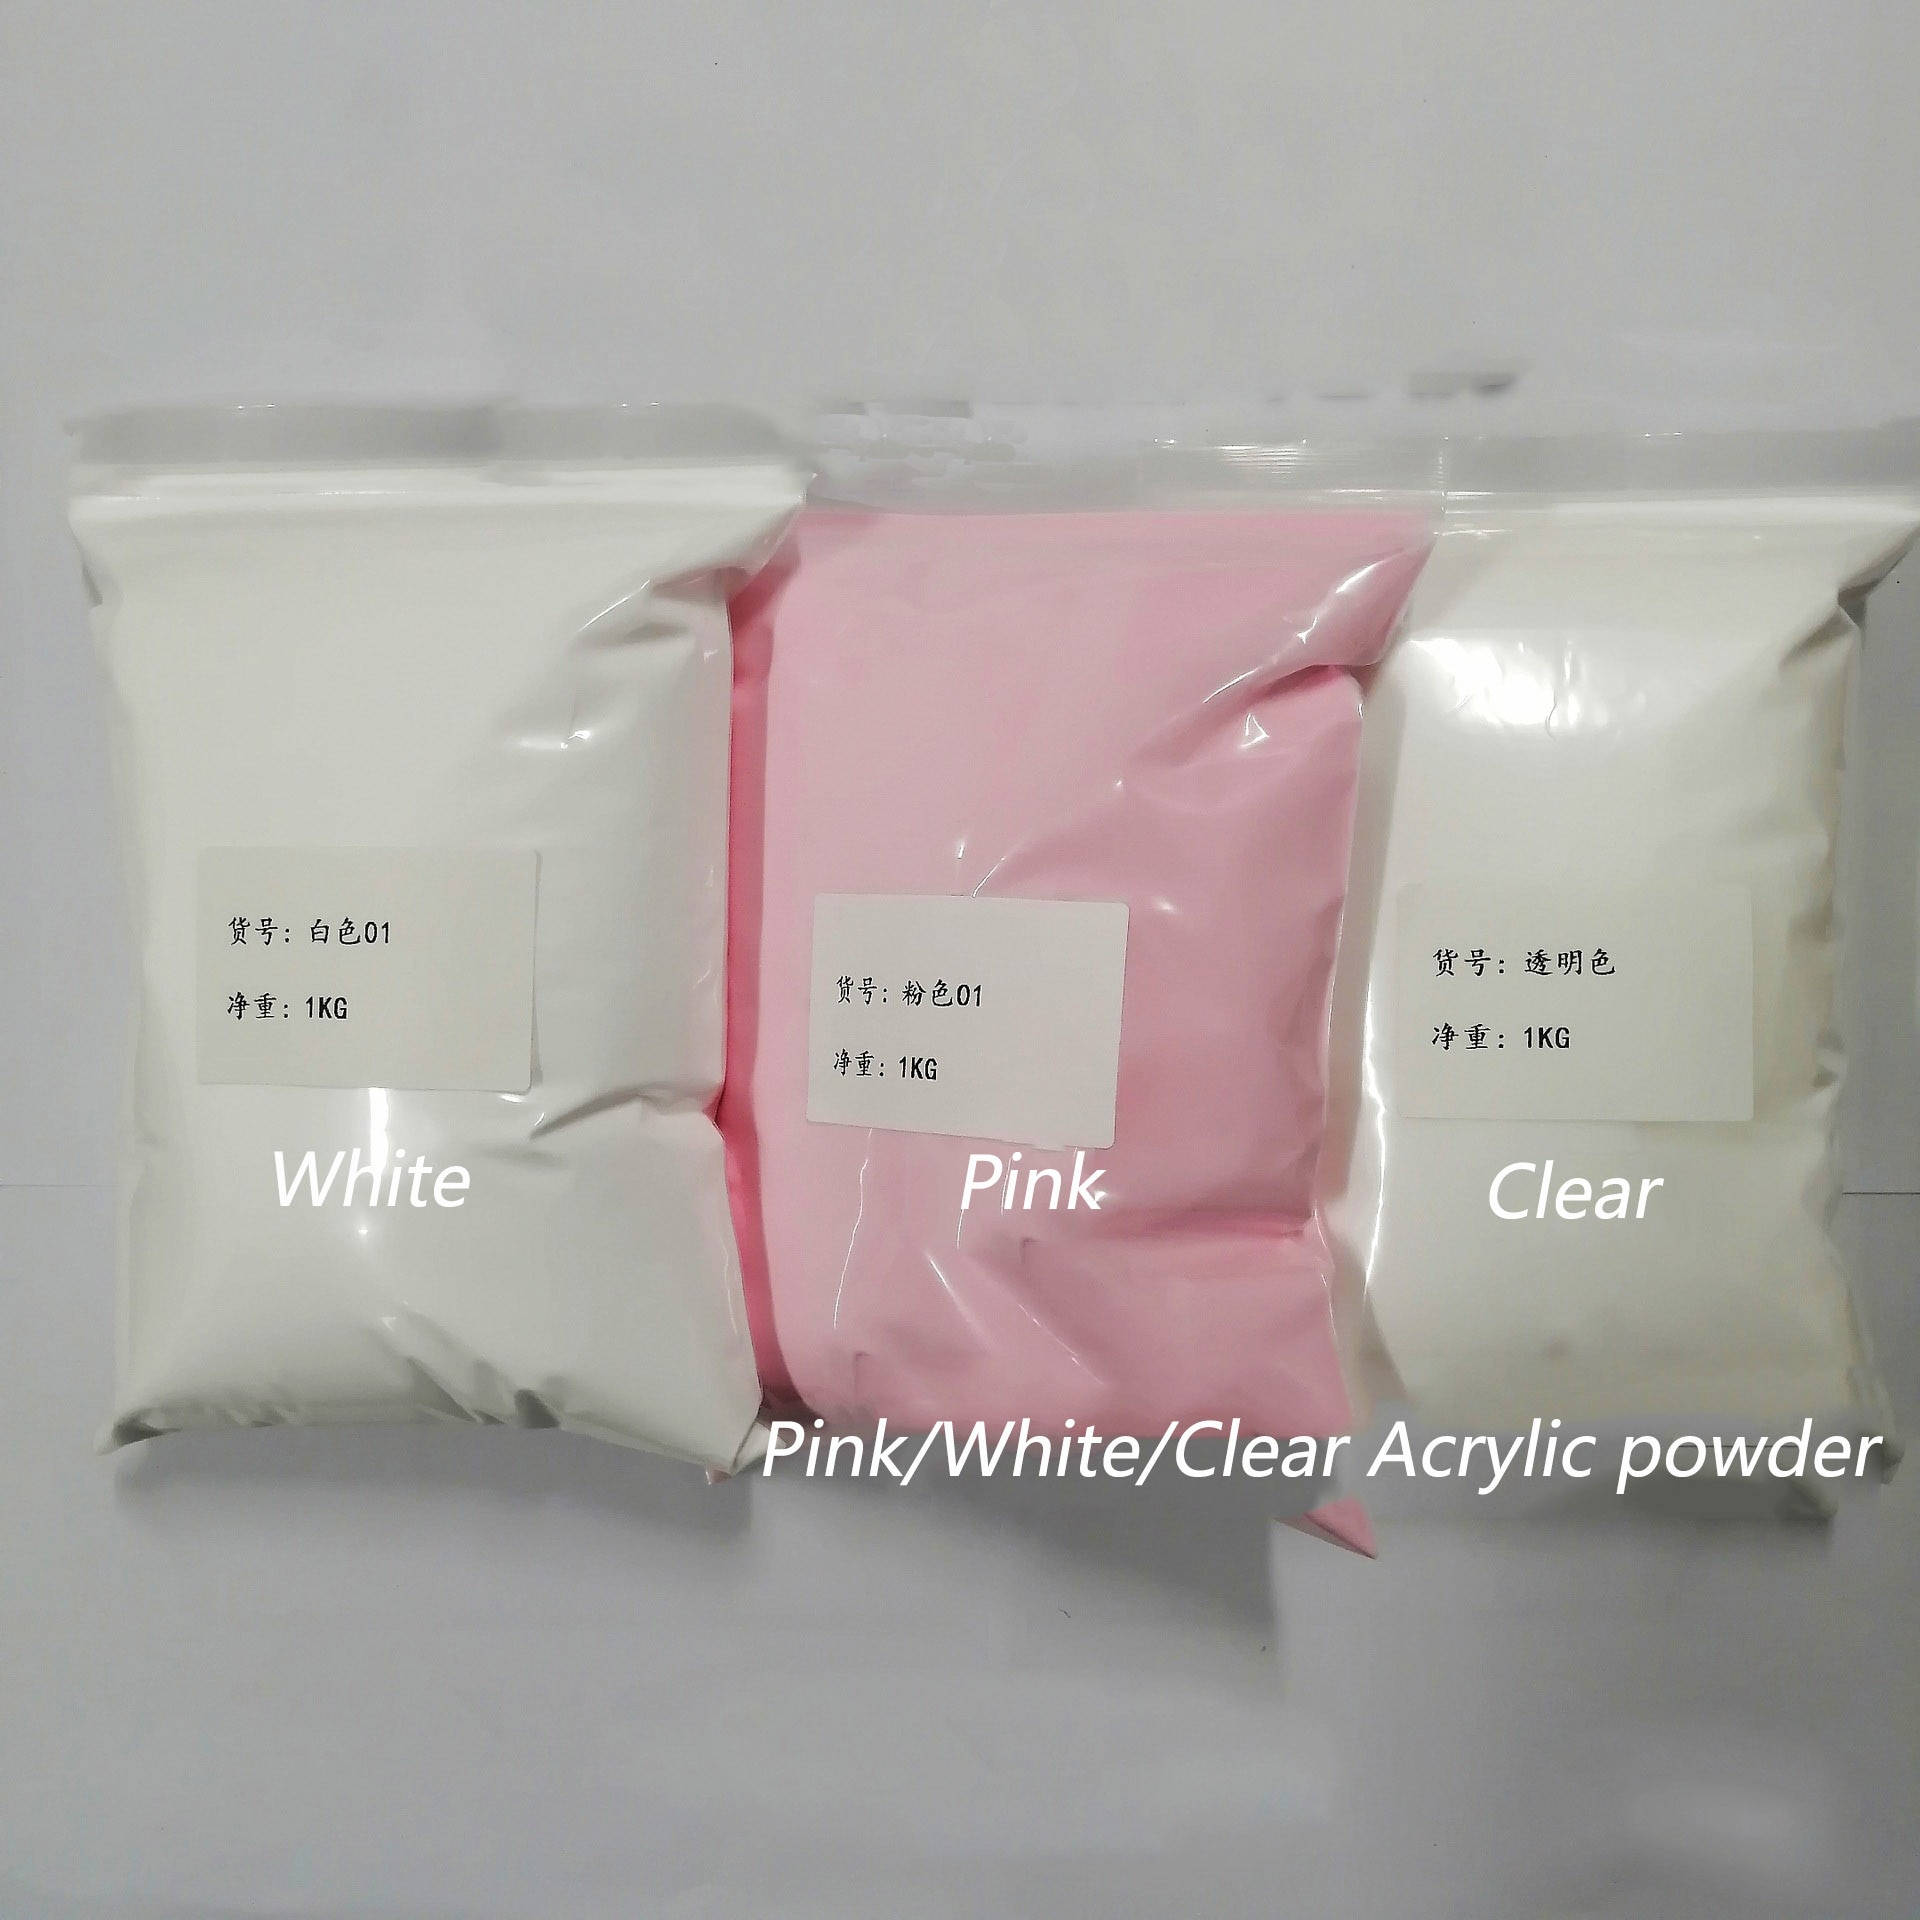 100G Solid Dip/Acrylic Powder White Clear Pink Powder Nail Dust 3 Colors Chrome Nail Powder Dipping Powder Pigment For Nails Art недорого